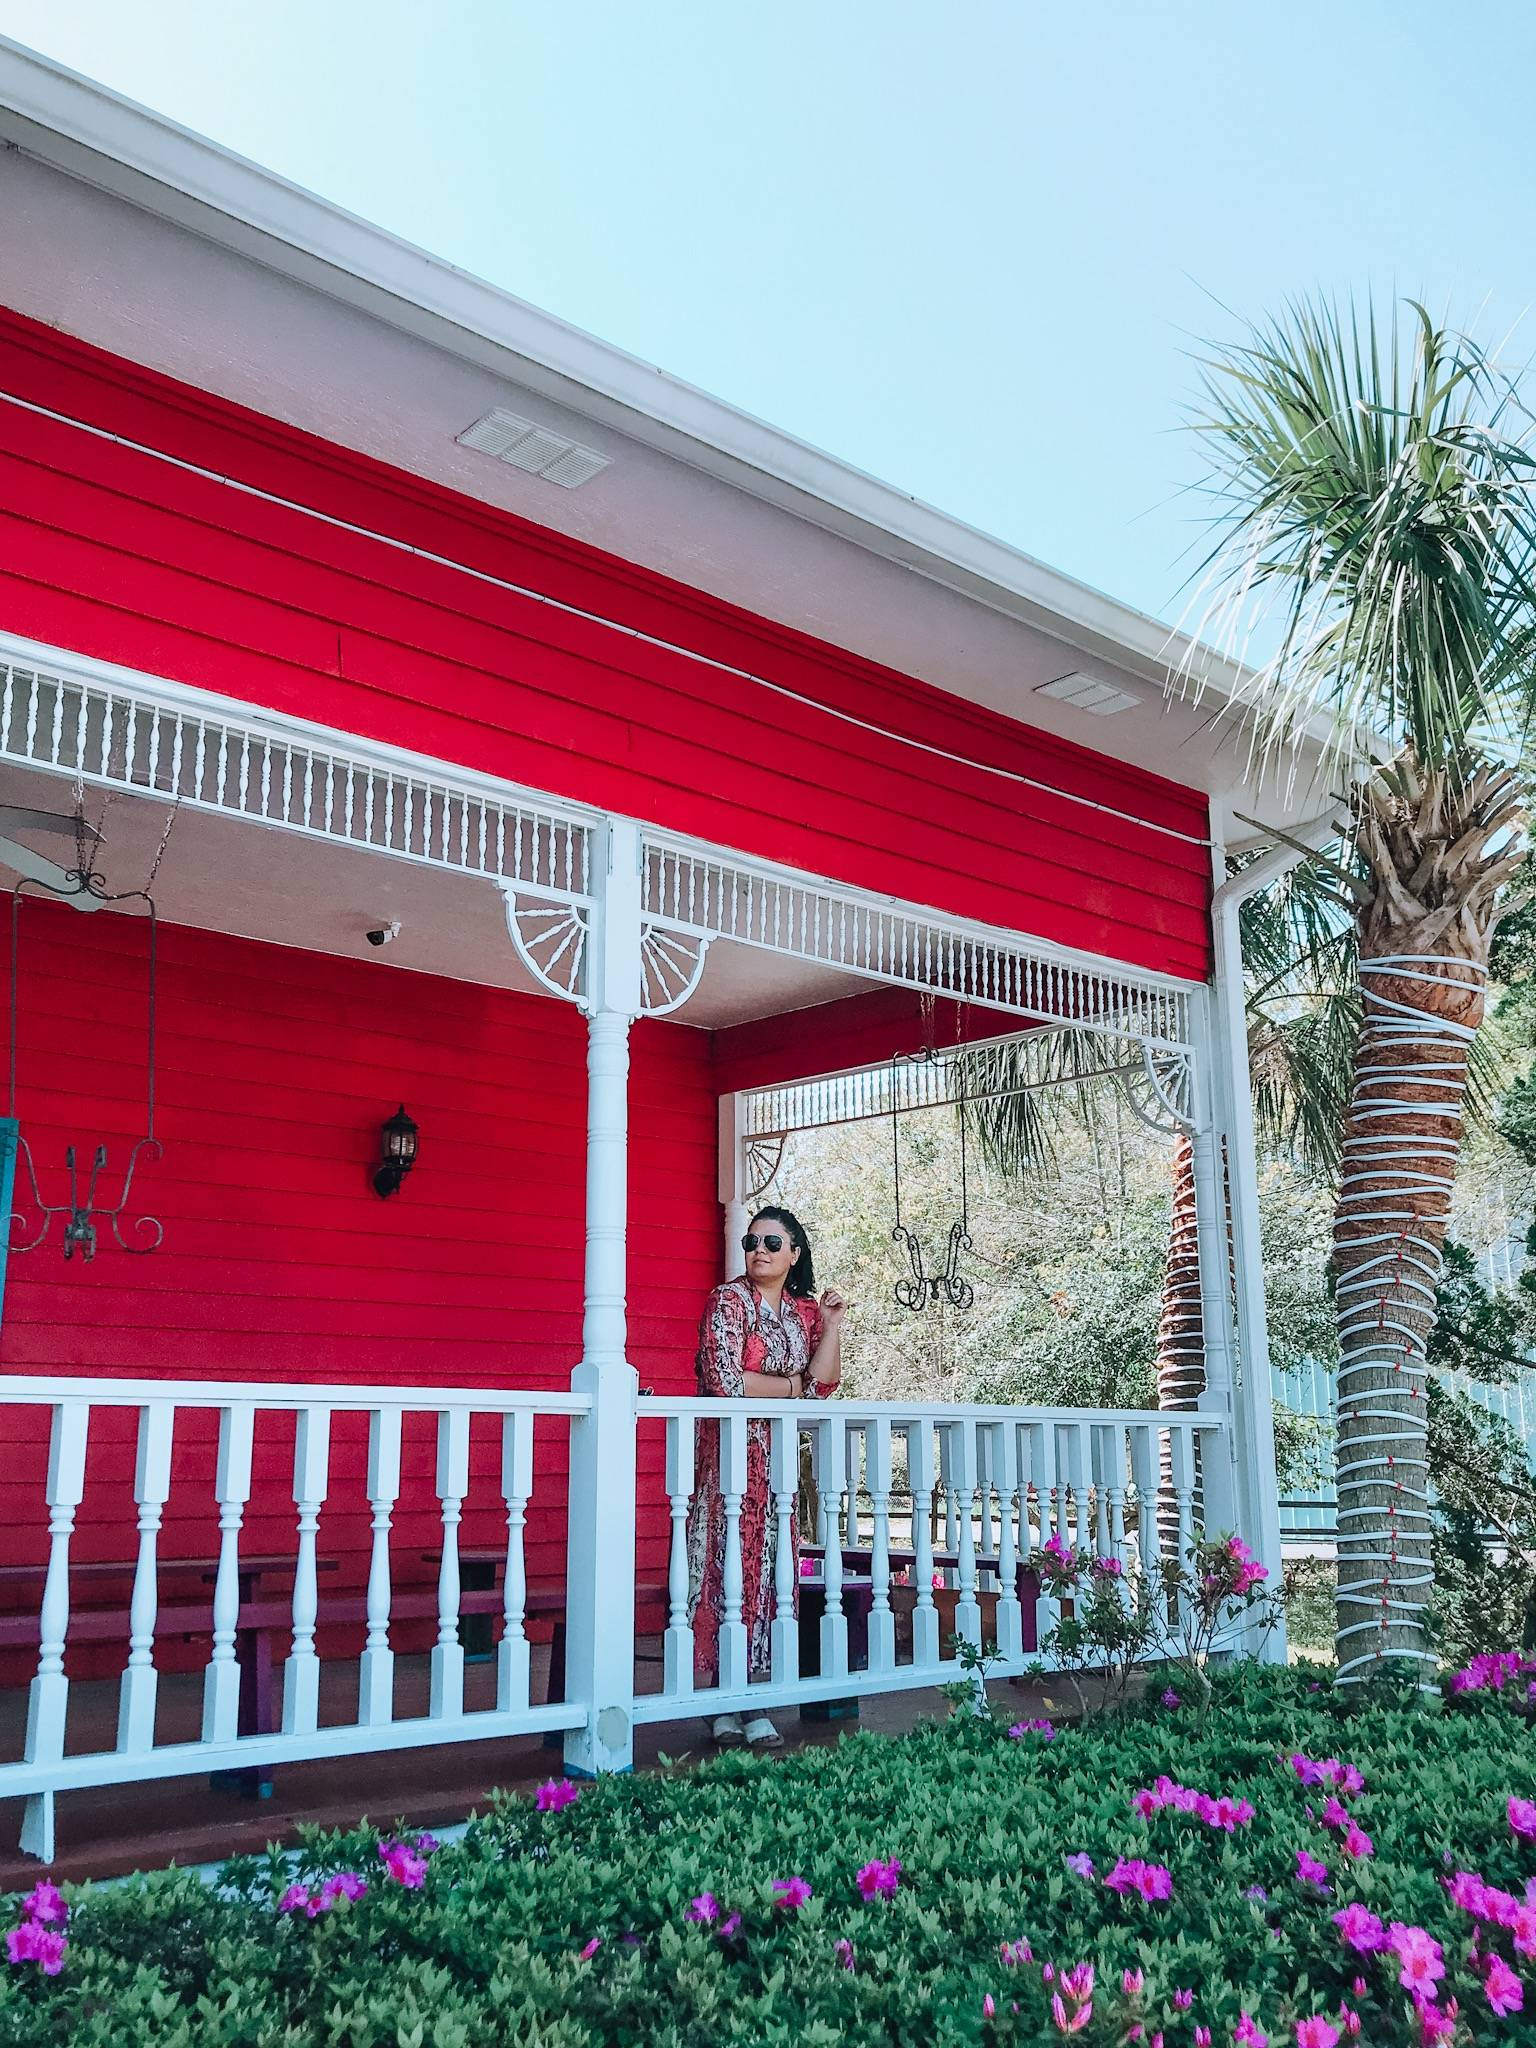 The girlfriend's guide to Myrtle beach- where to stay, what to do, and where to eat to have the best time.